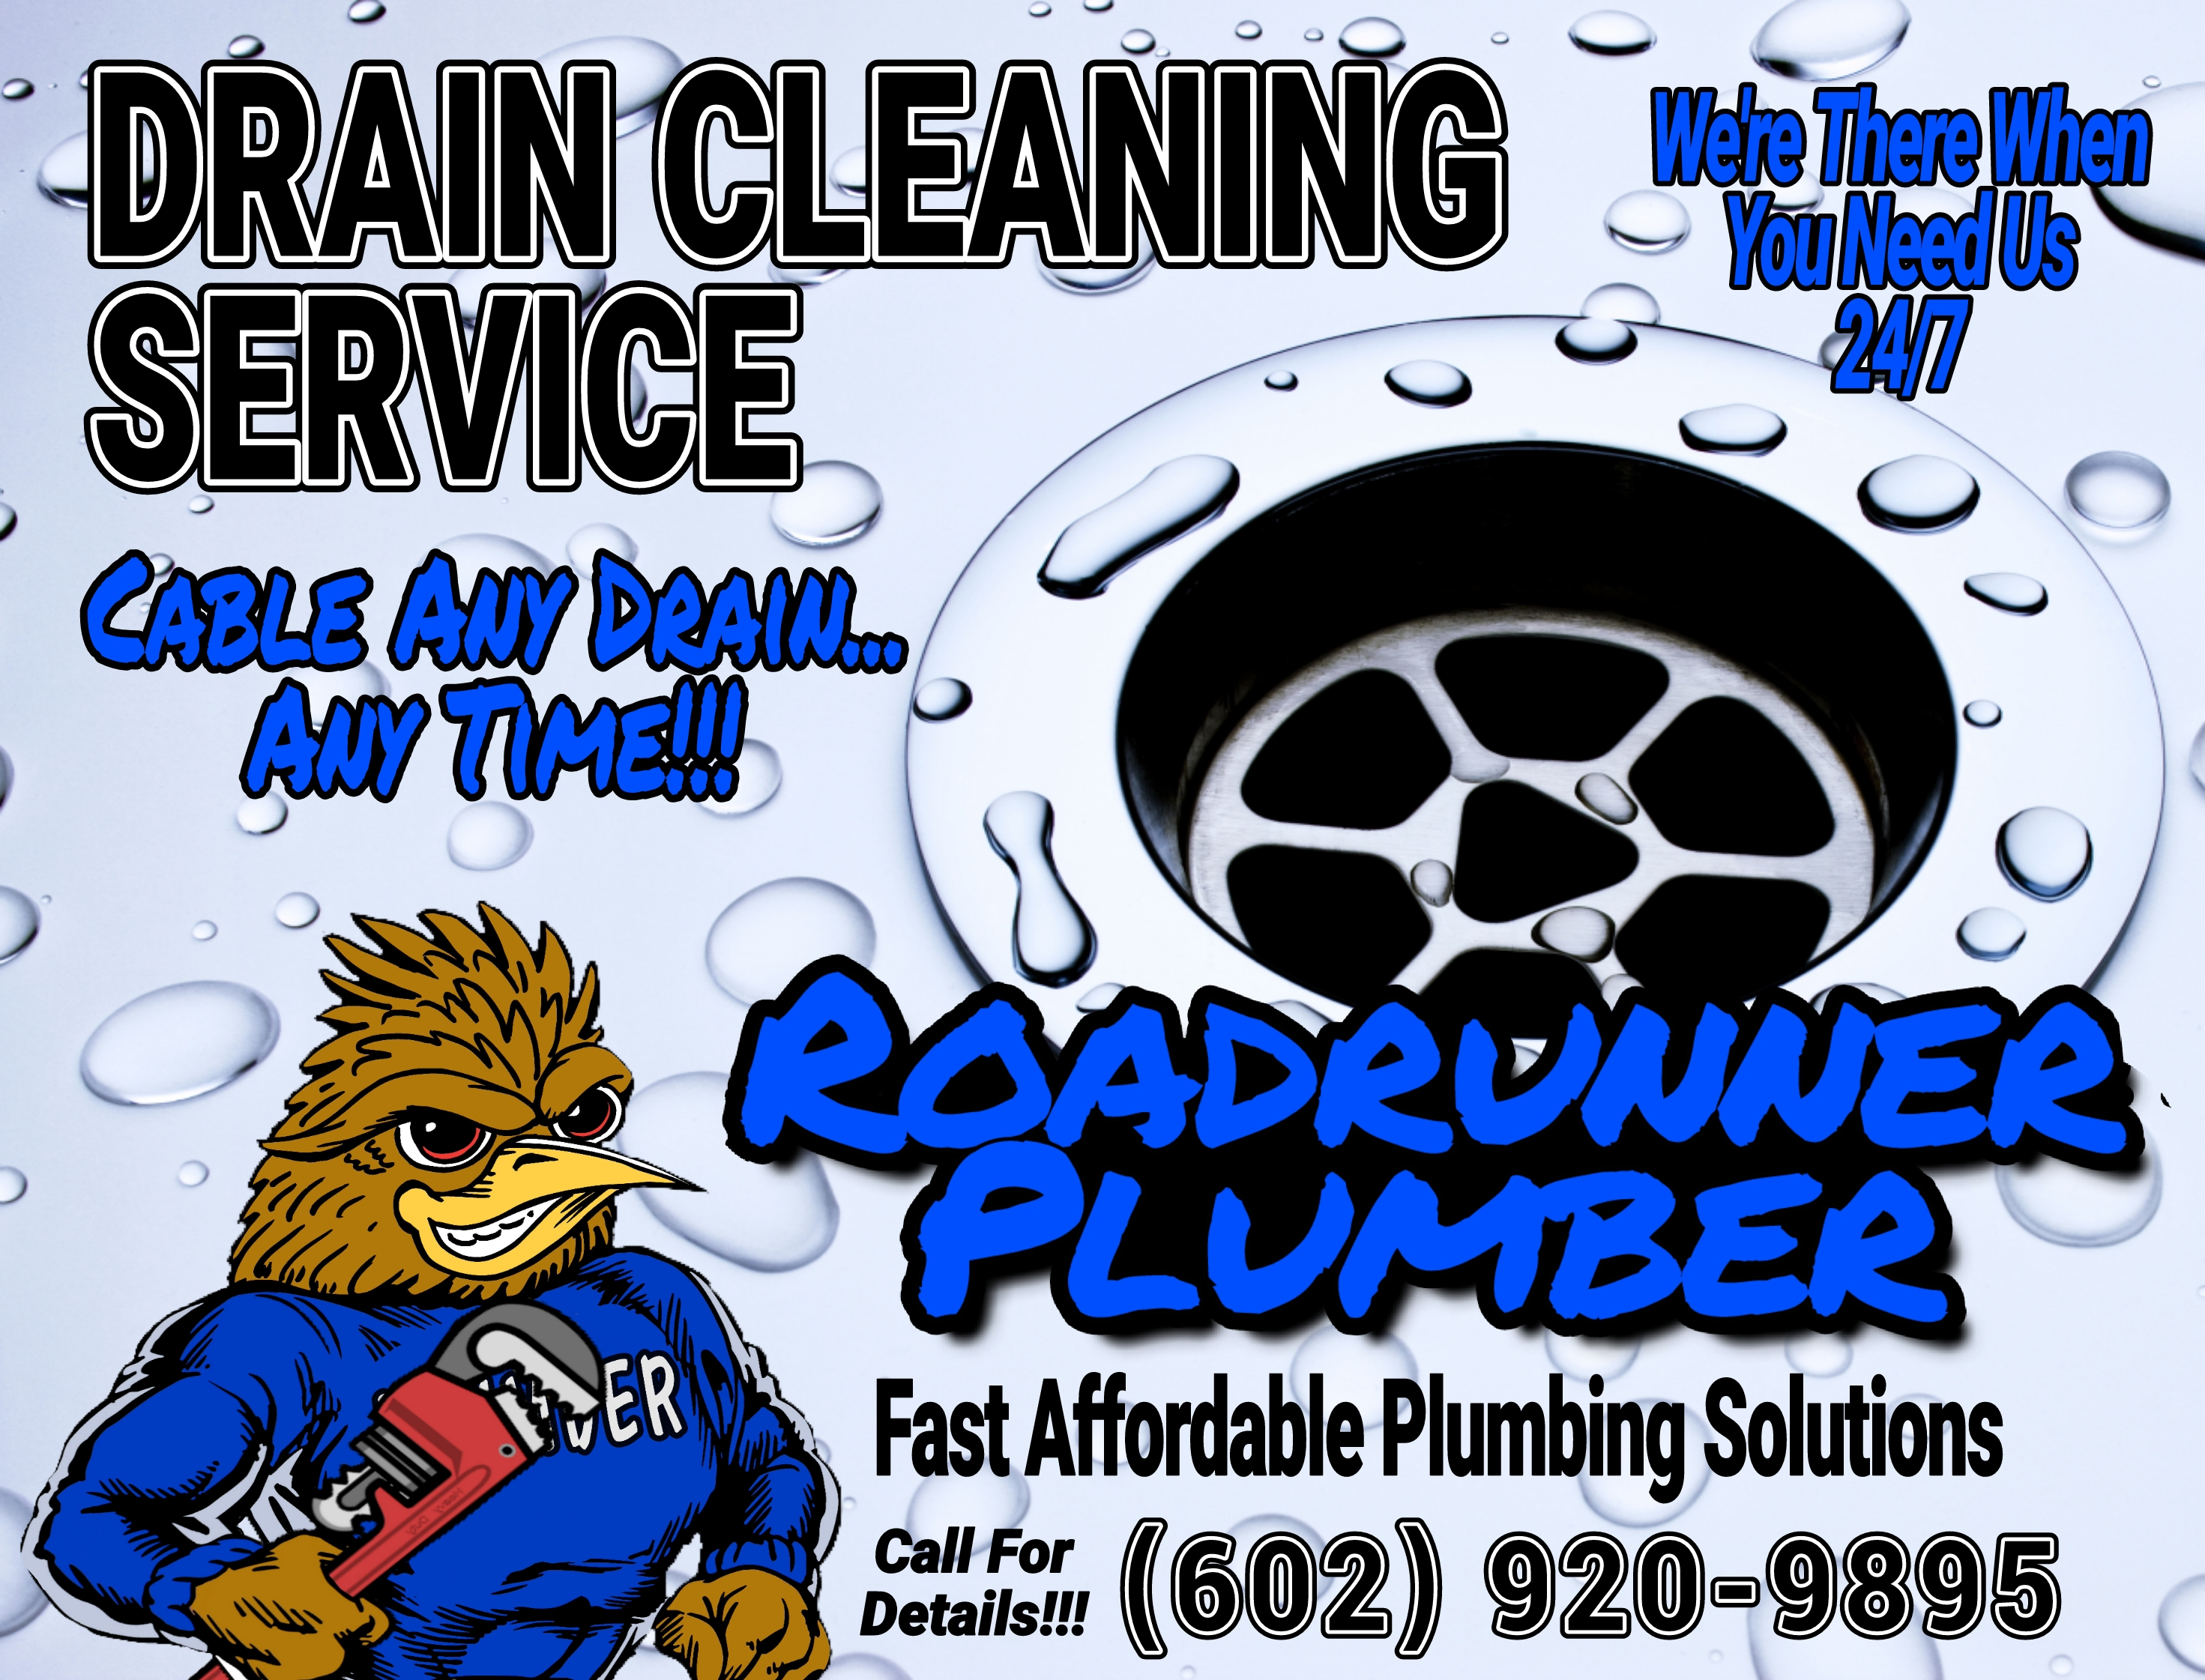 PLUMBING ⌦ DRAIN CLEANING SPECIALS ⌫ PLUMBER